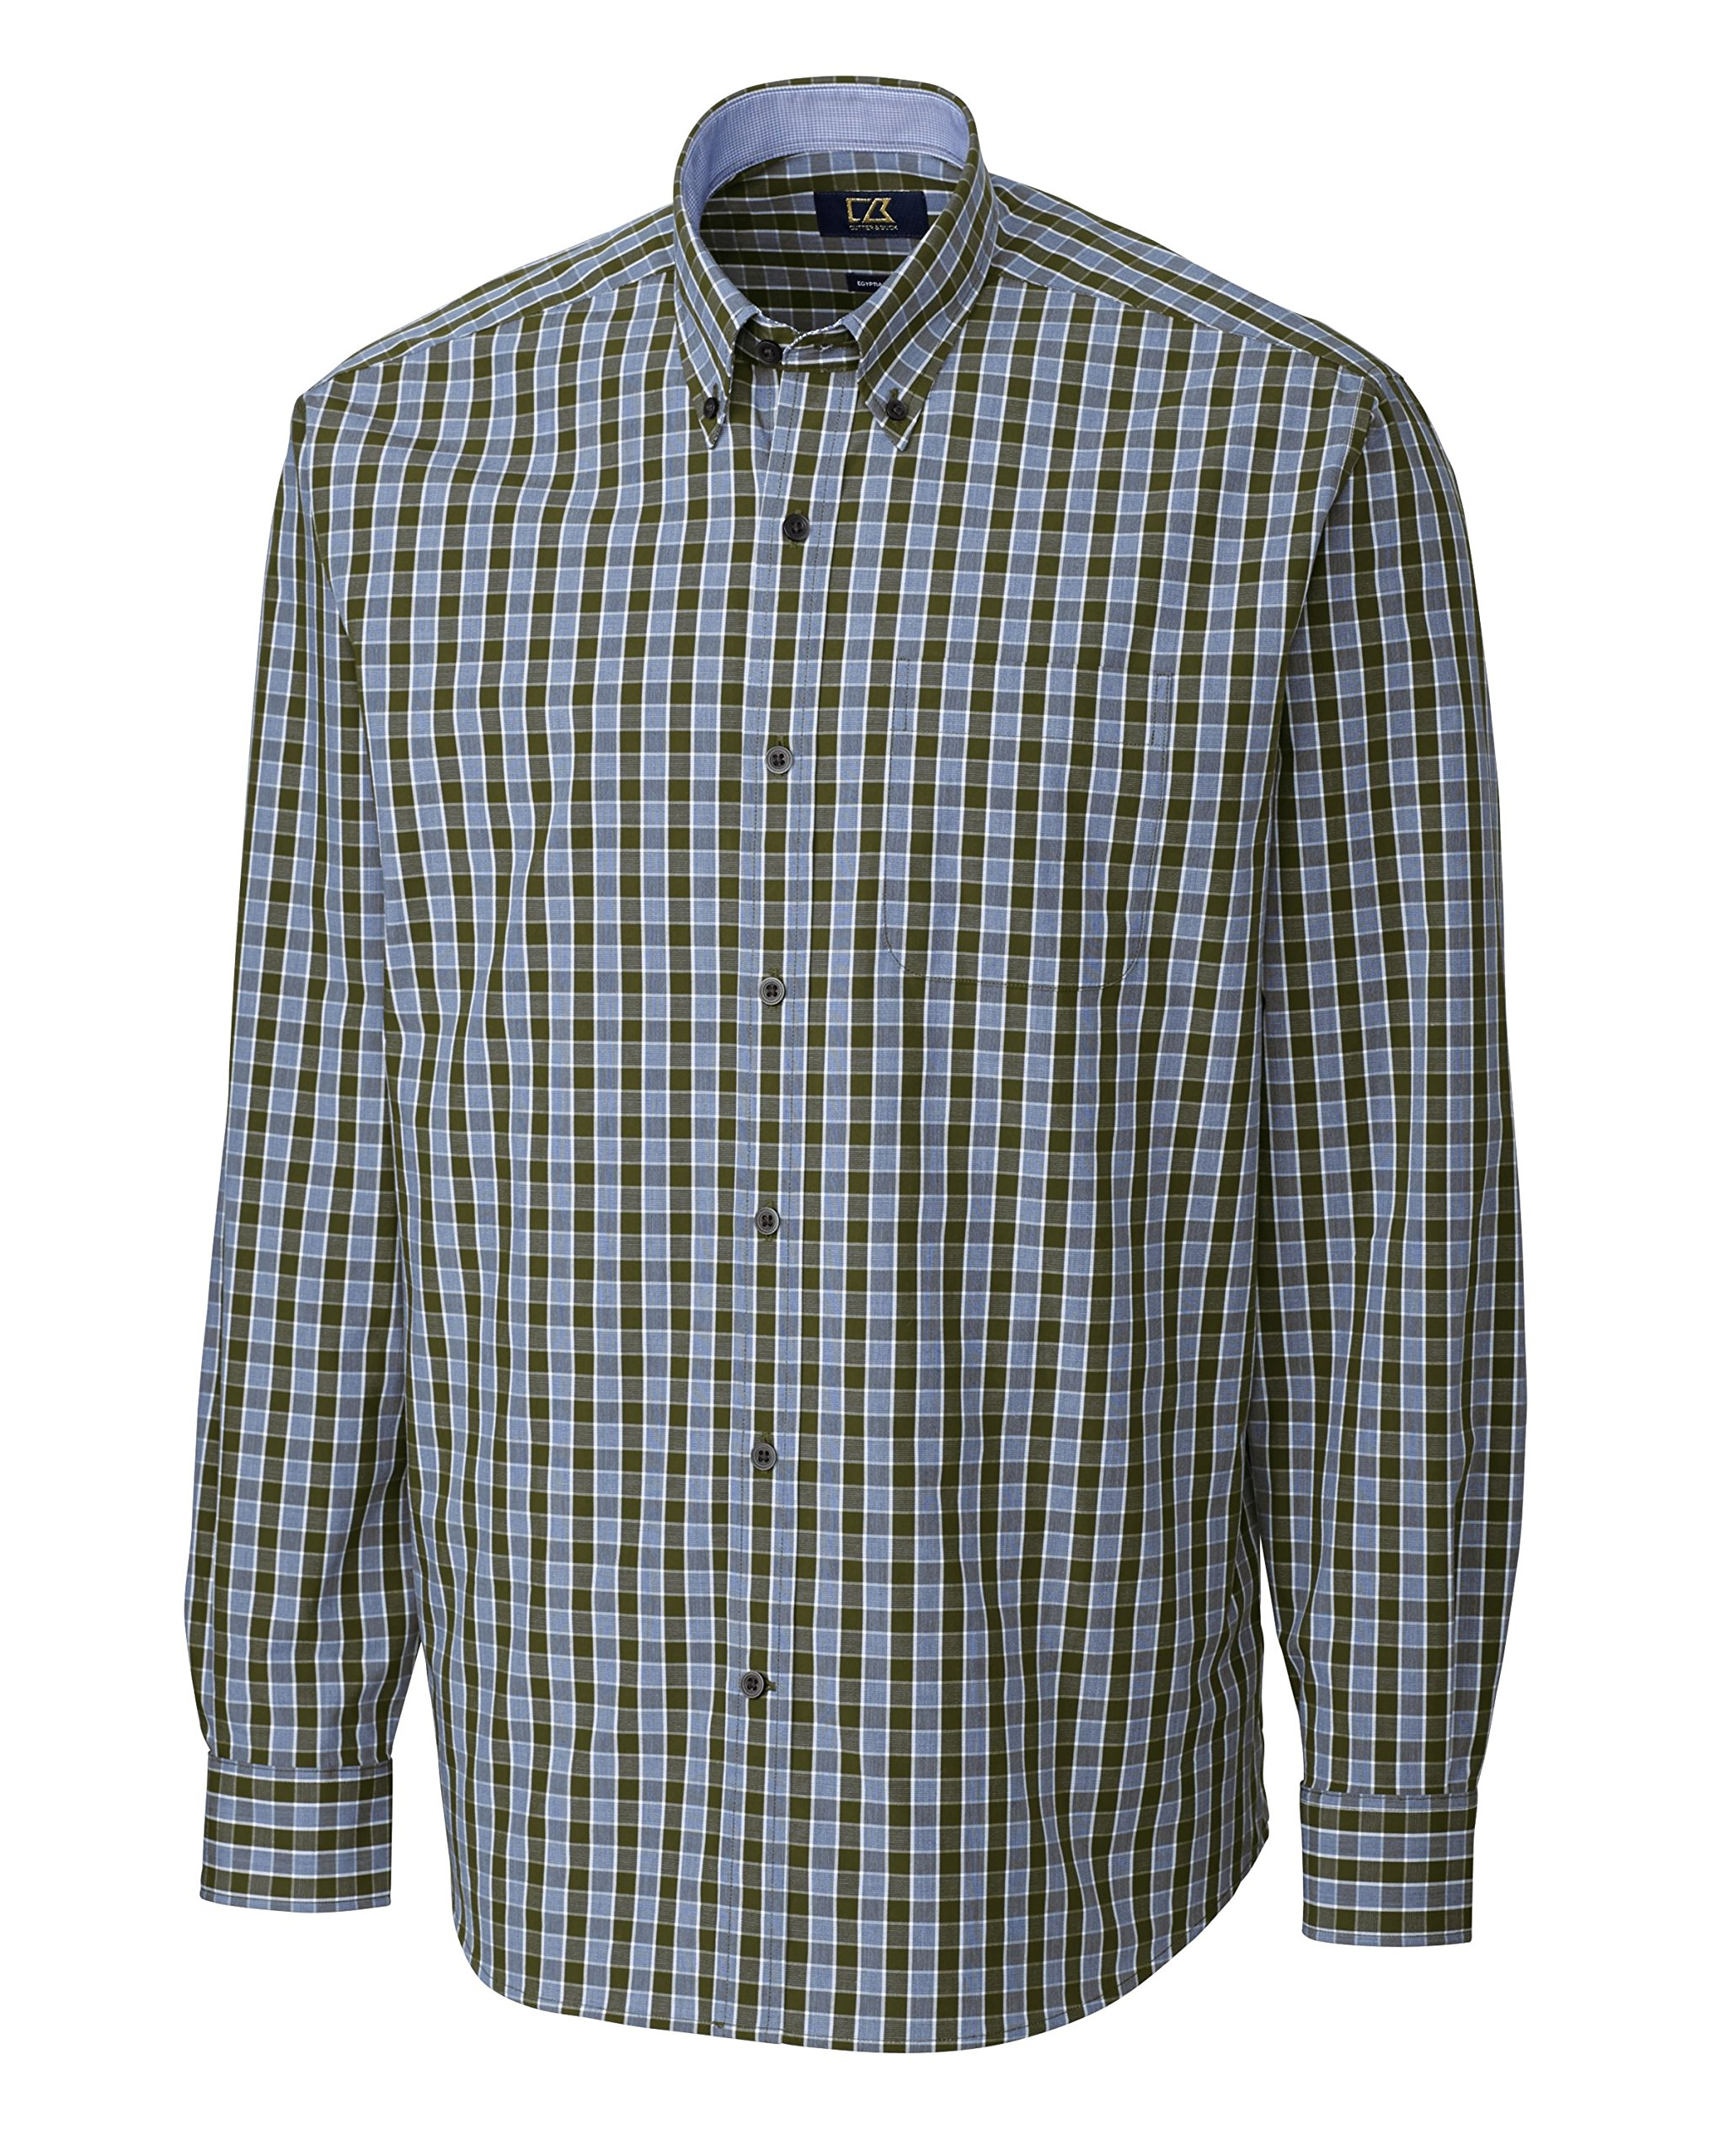 Cutter & Buck Men's Big-Tall Long Sleeve Shields Check Shirt, Myrtle, 5X/Big